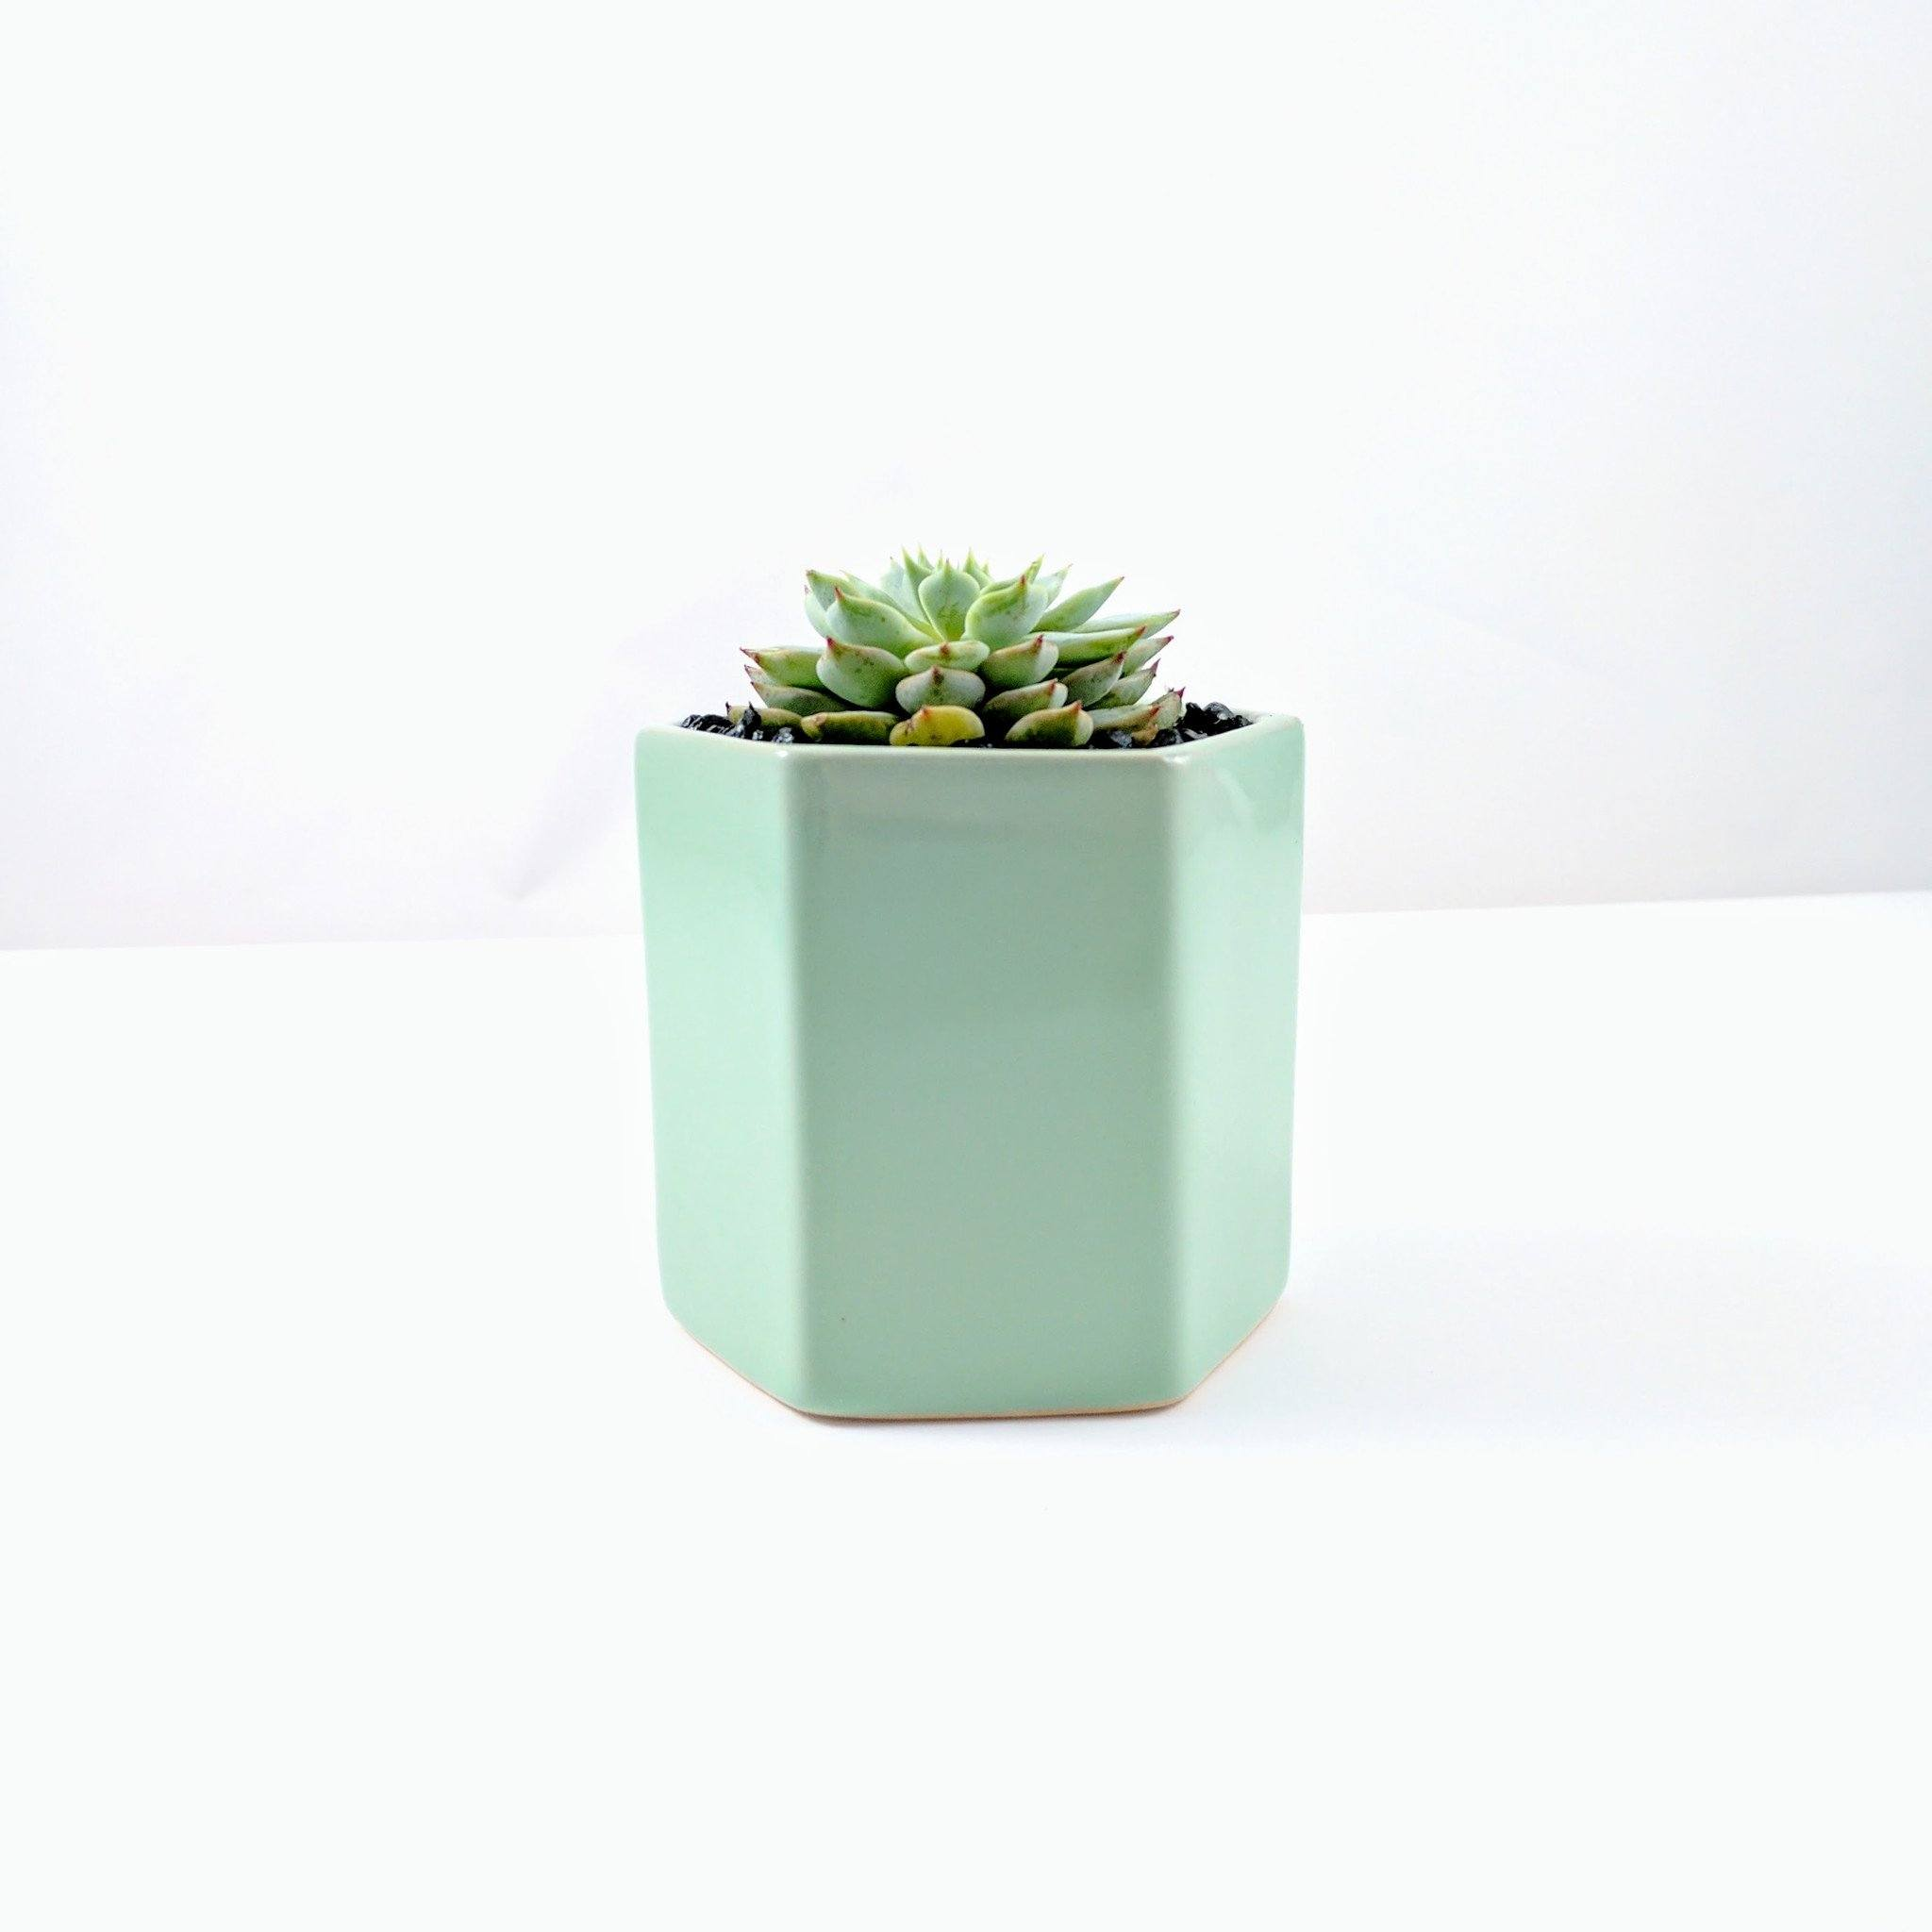 Tula Pot - Seafoam Green - By Plant Collective | Indoor House Plants, Succulents, Air Plants & Terrariums - Toronto Canada